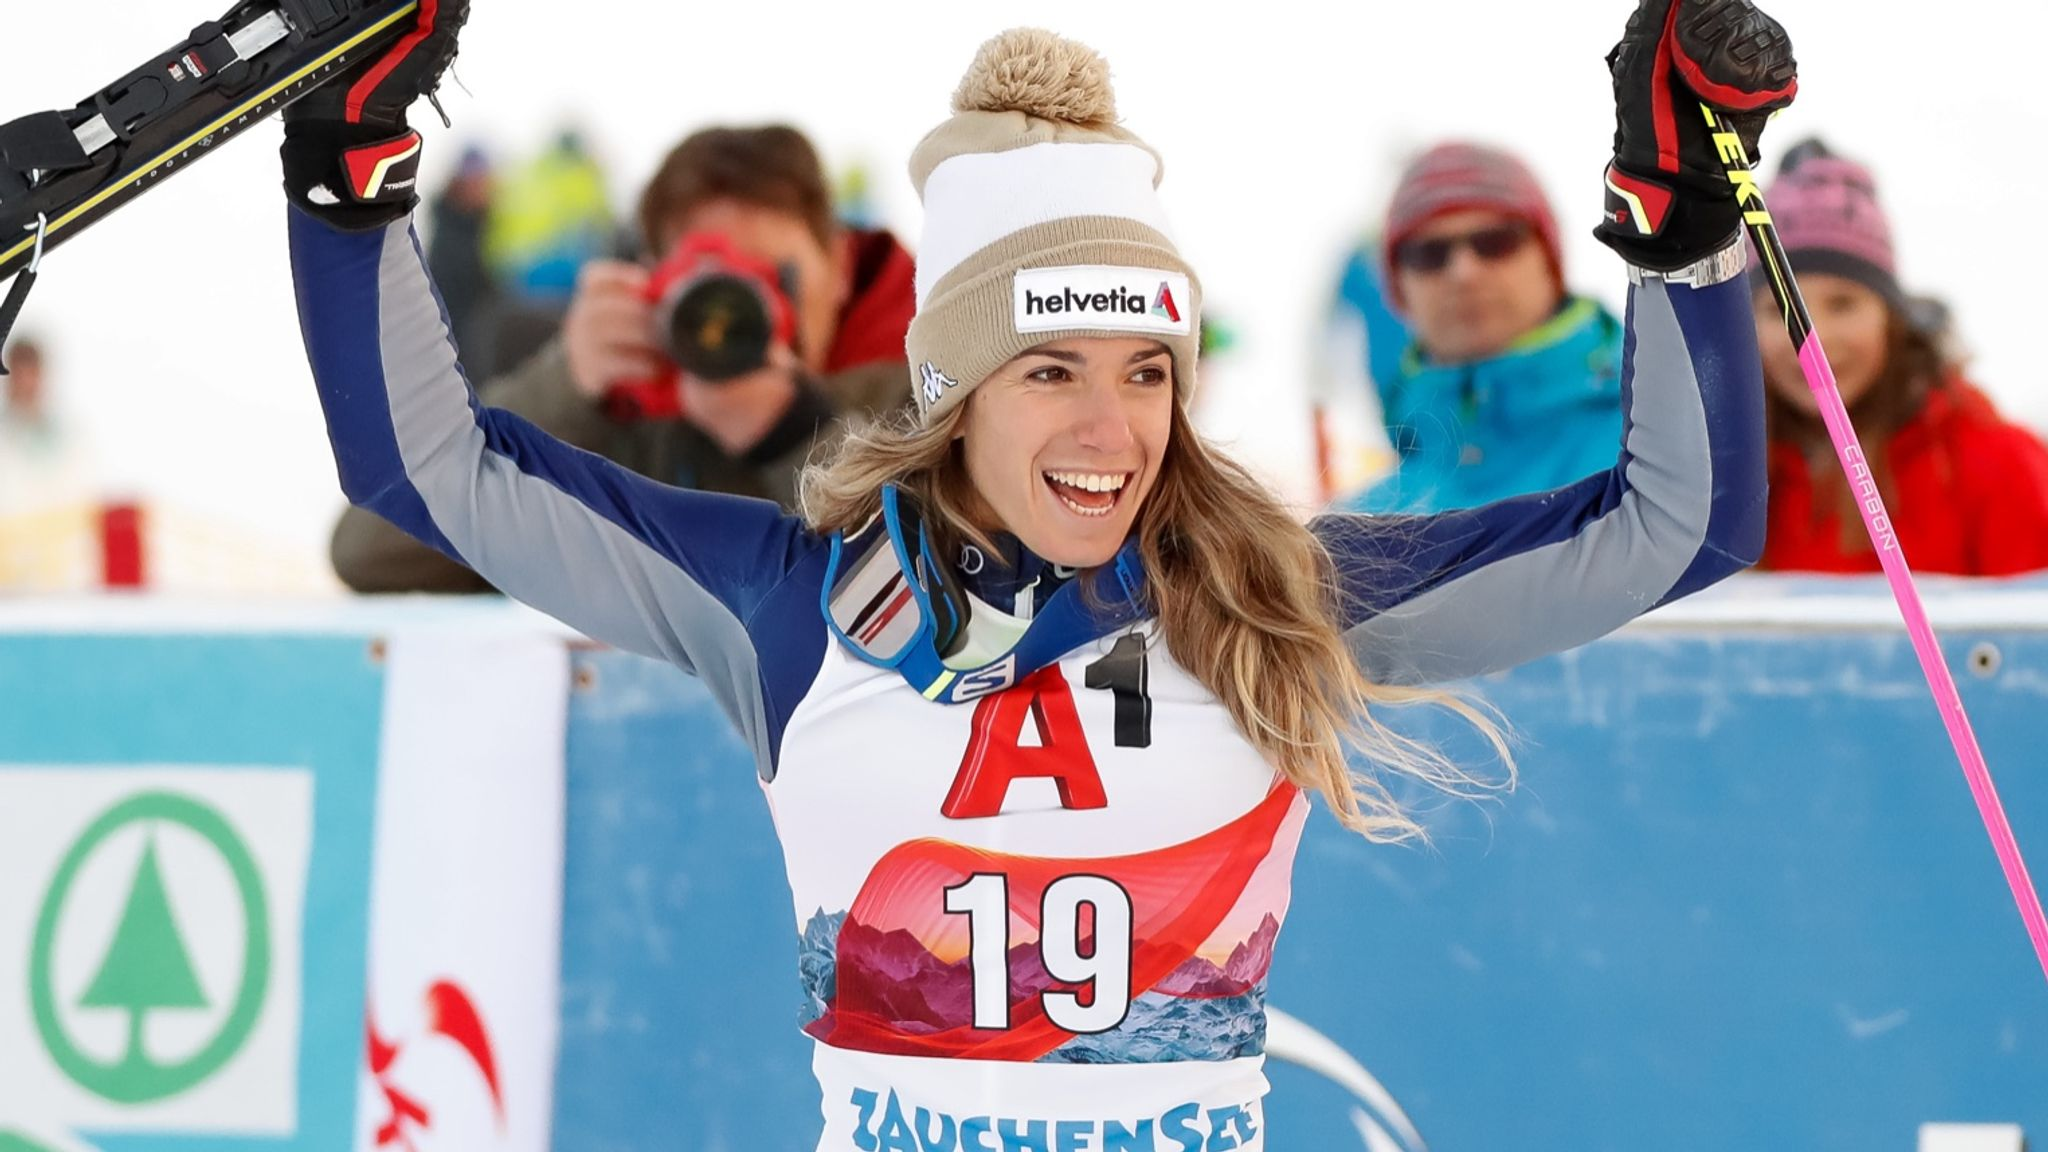 Alpine skier Marta Bassino hits World Cup podium again in Austria